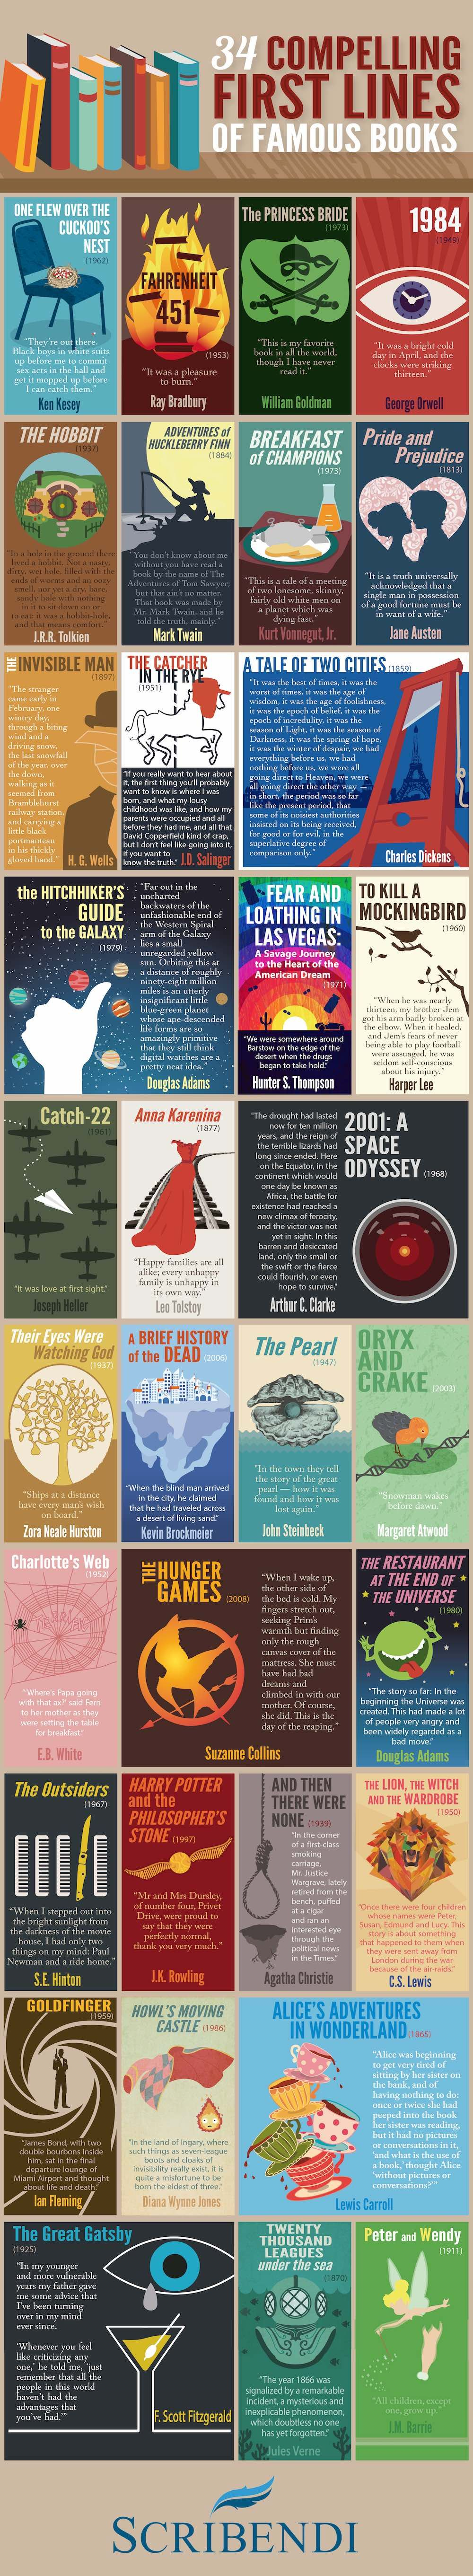 34 Compelling First Lines of Famous Books | Scribendi